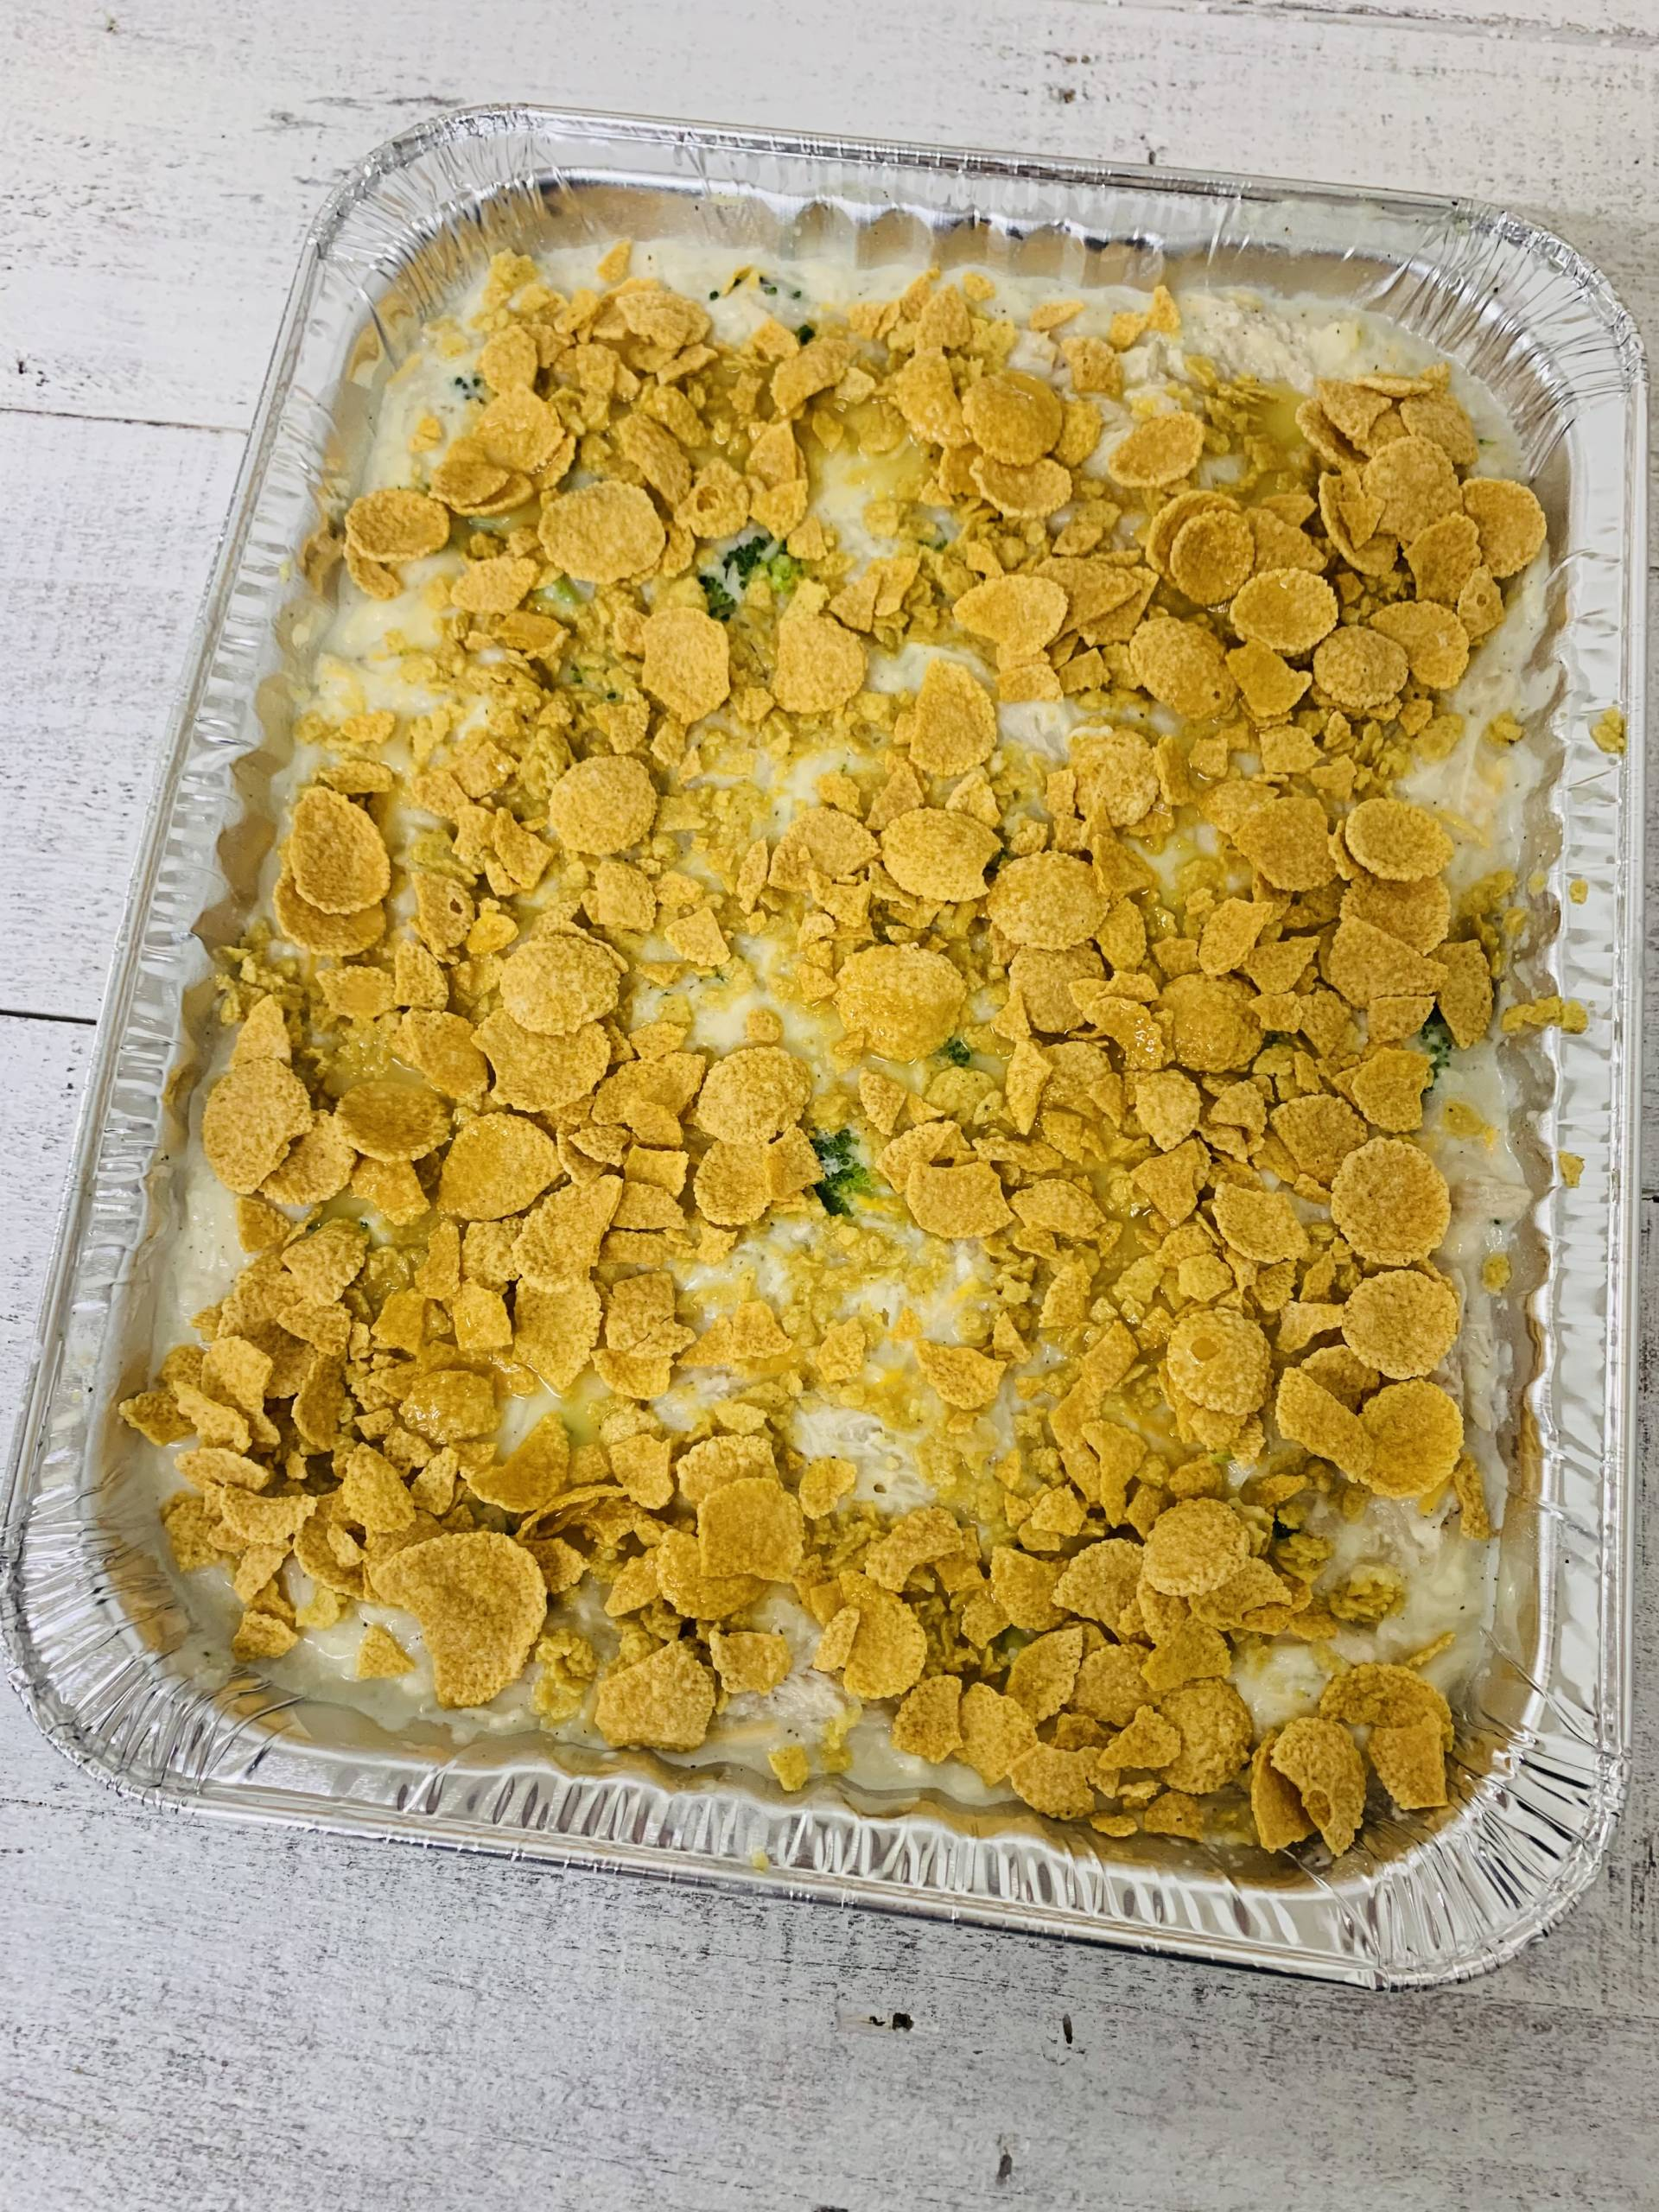 Cheesey Chicken & Broccoli Rice Casserole (Feeds 6-8)